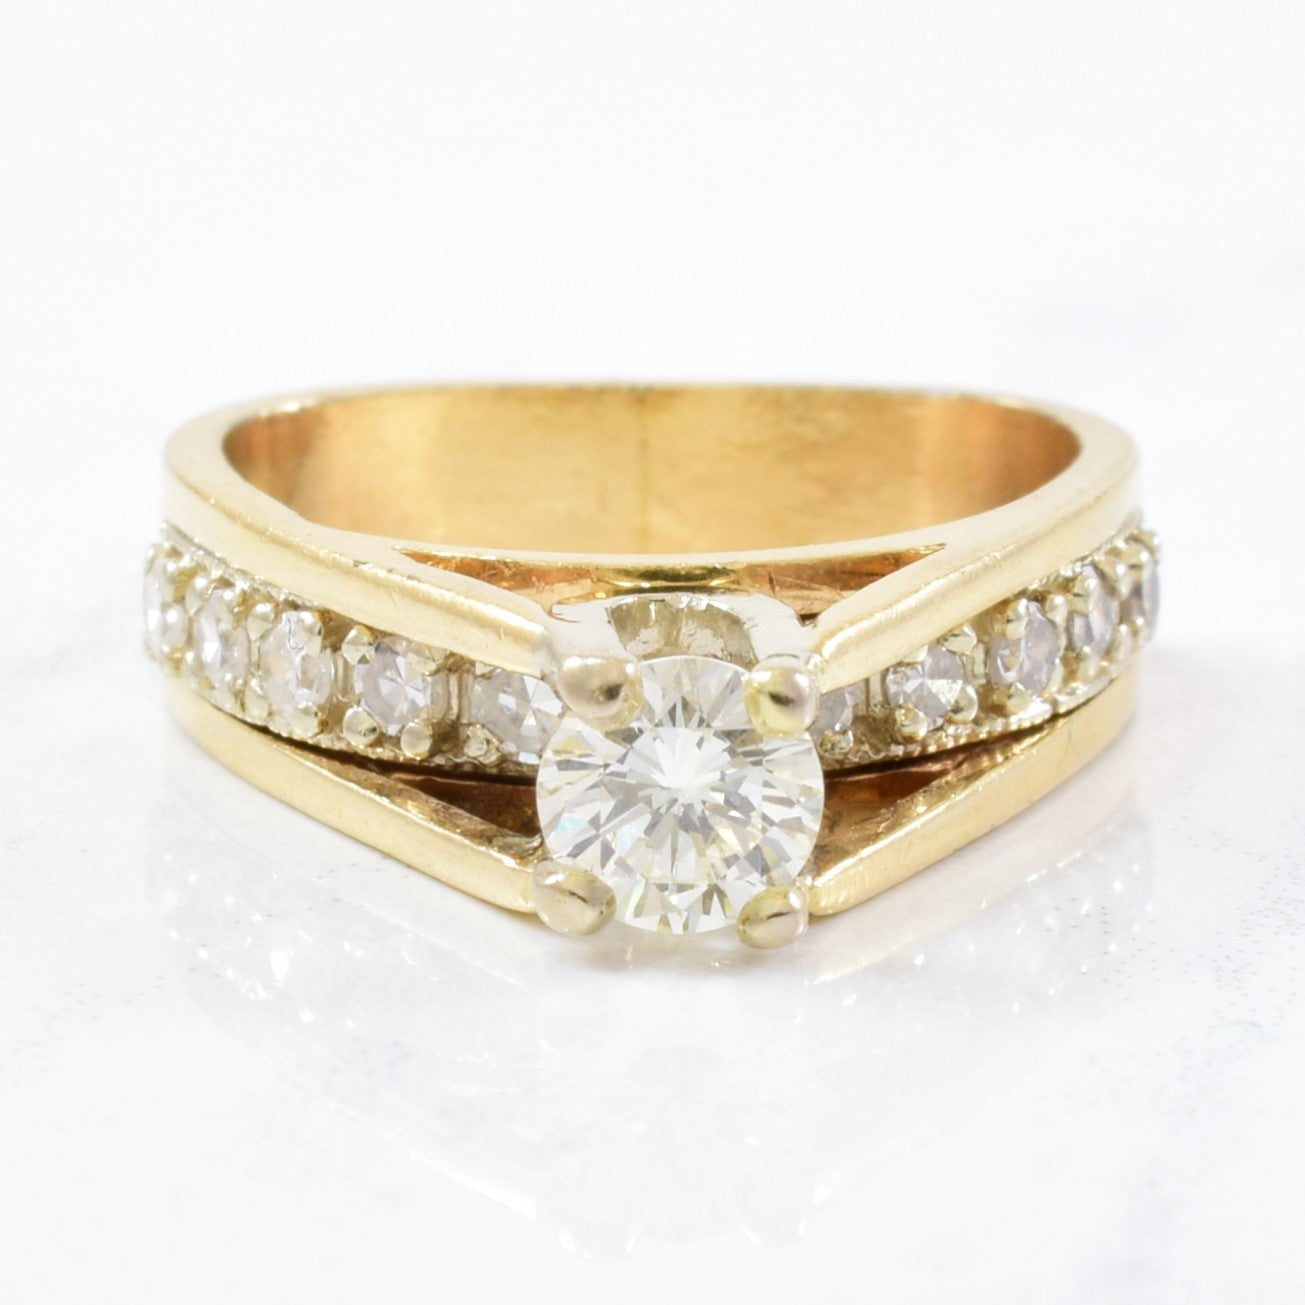 High Set Diamond Cathedral Engagement Ring | 0.67ctw | SZ 3.5 |